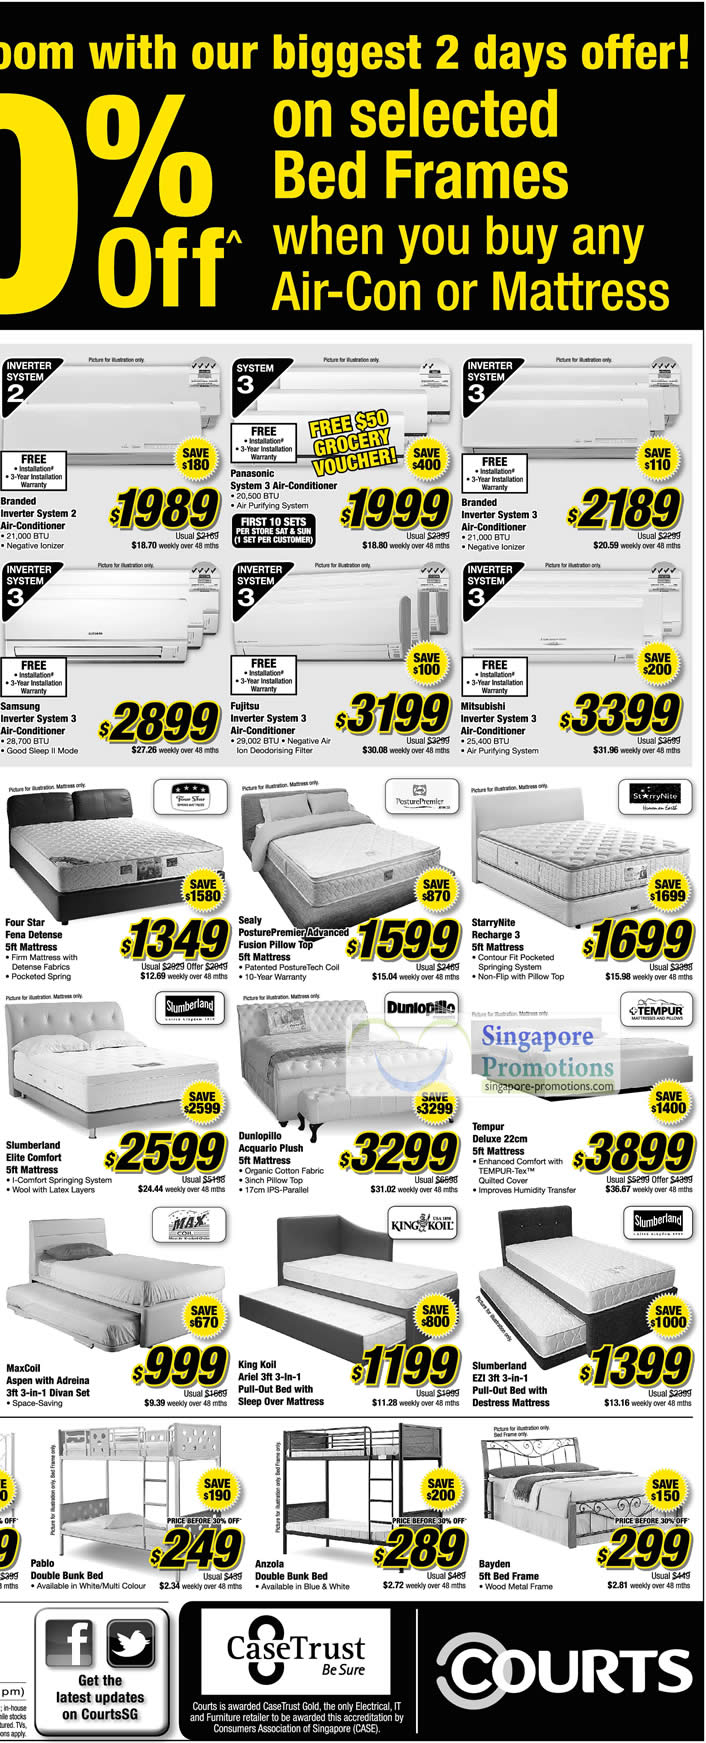 Sealy PosturePremier Advanced Fusion Pillow Top Mattress, StarryNite Recharge 3 Mattress, Dunlopillo Acquario Plush Mattress, MaxCoil Aspen Divan Set, King Koil Ariel Bed Frame, Anzola Double Bunk Bed Frame, Bayden Bed Frame, Slumberland EZI Bed Frame